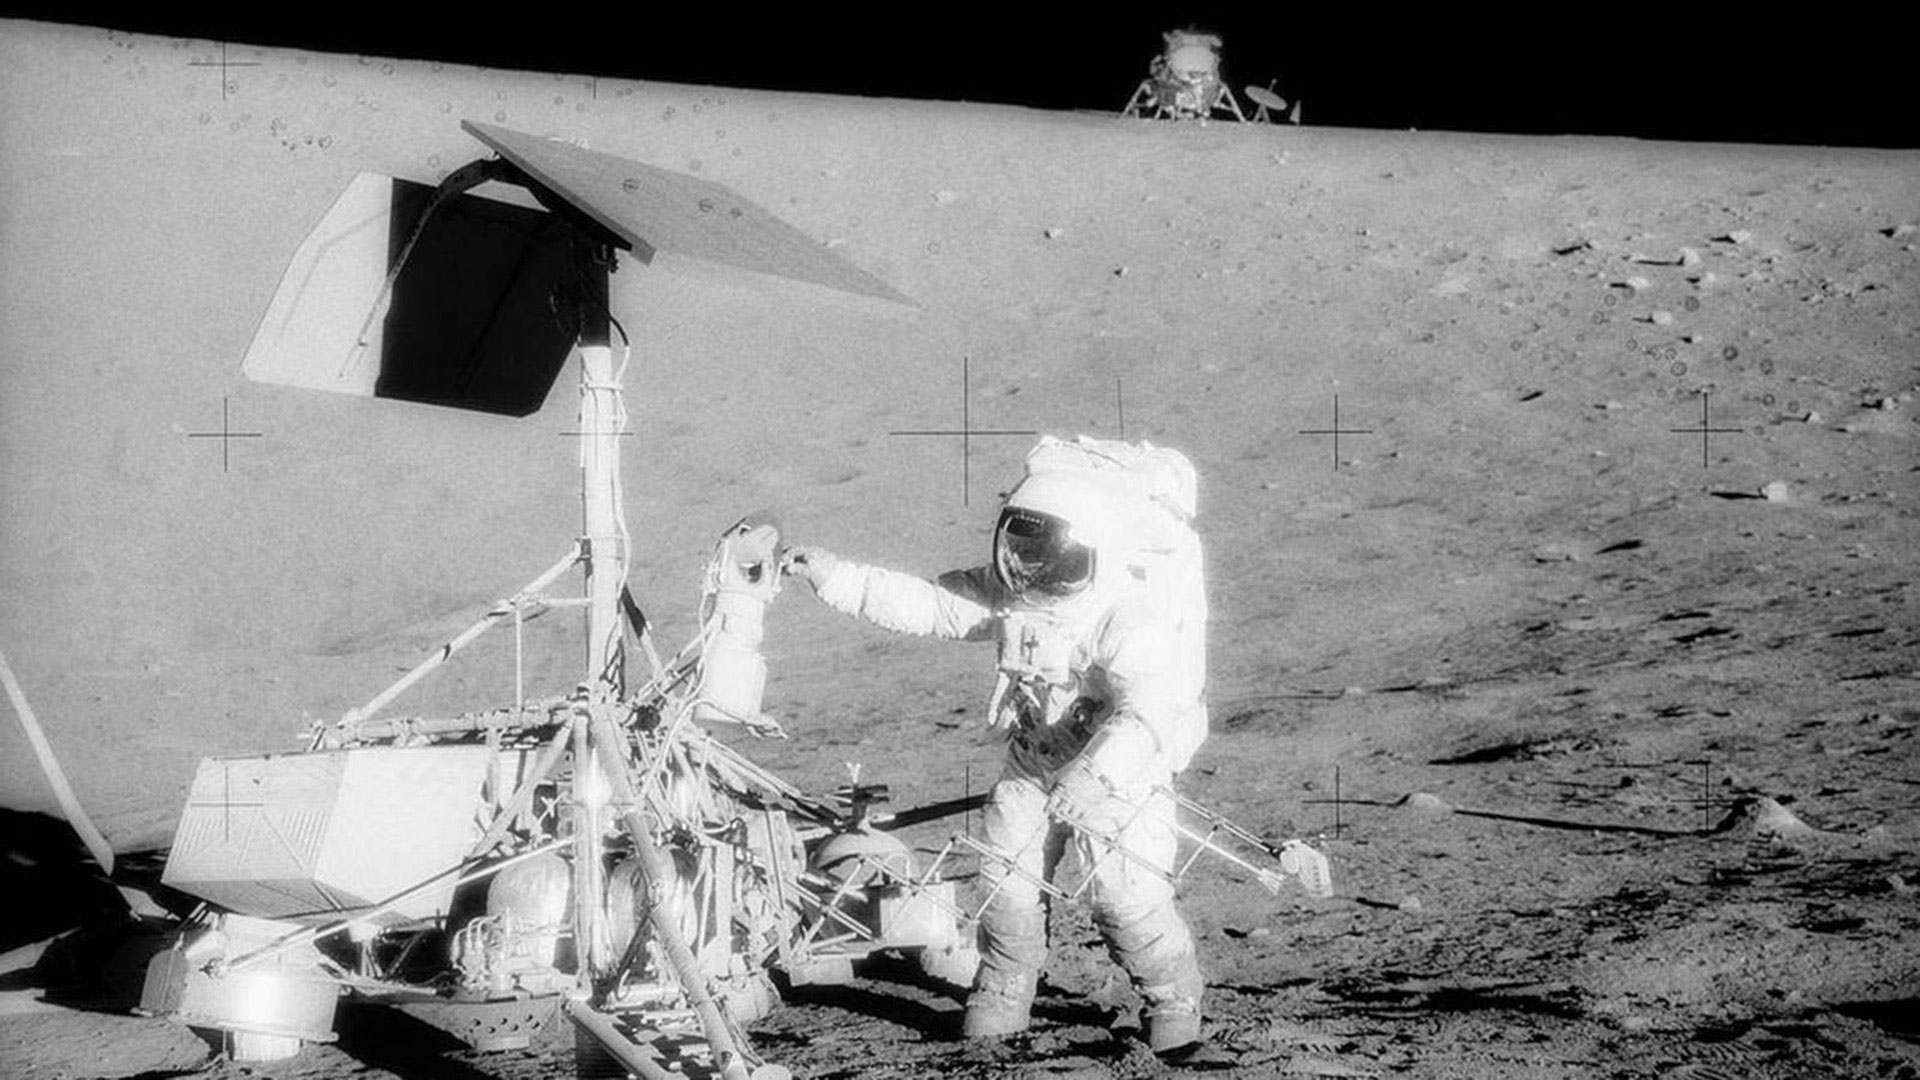 Apollo 12 astronaut Alan Bean inspects Surveyor 3